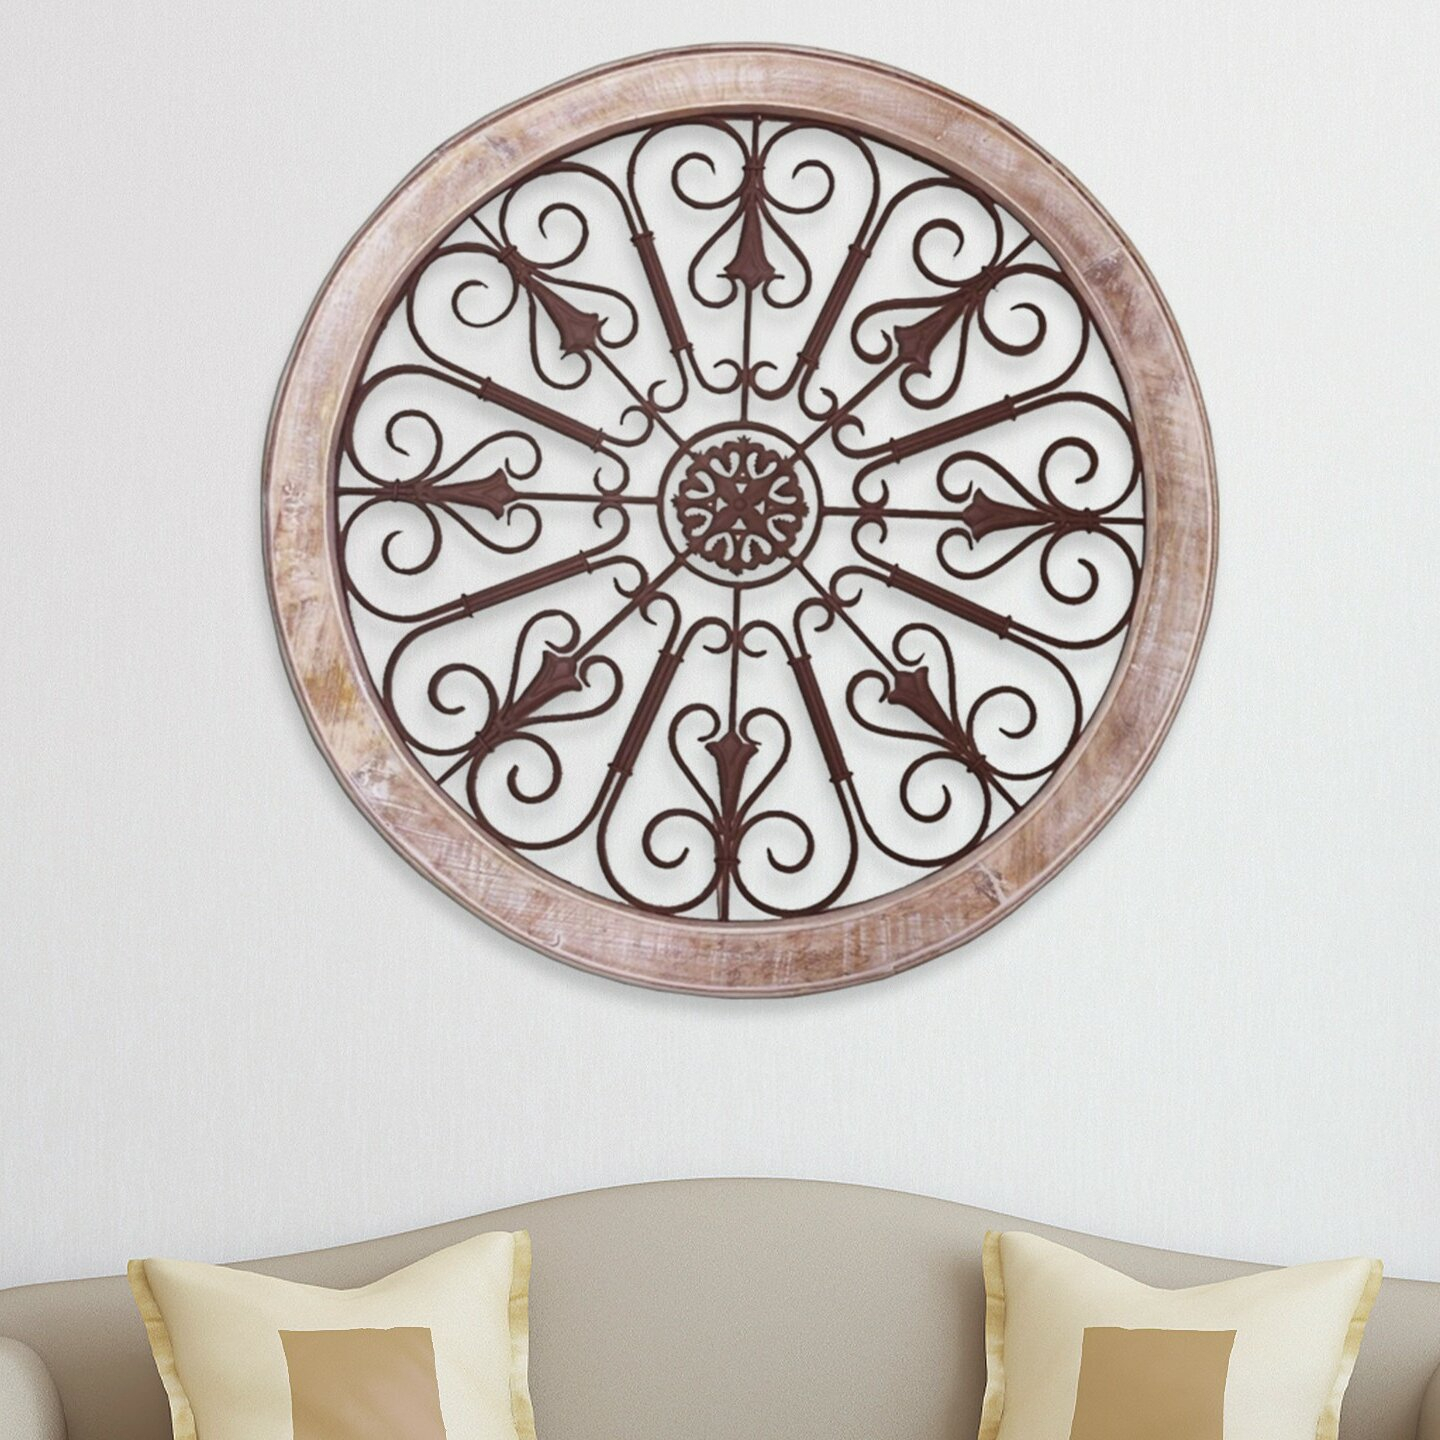 Round Wall Decor | Wayfair Pertaining To Round Compass Wall Decor (Gallery 21 of 30)